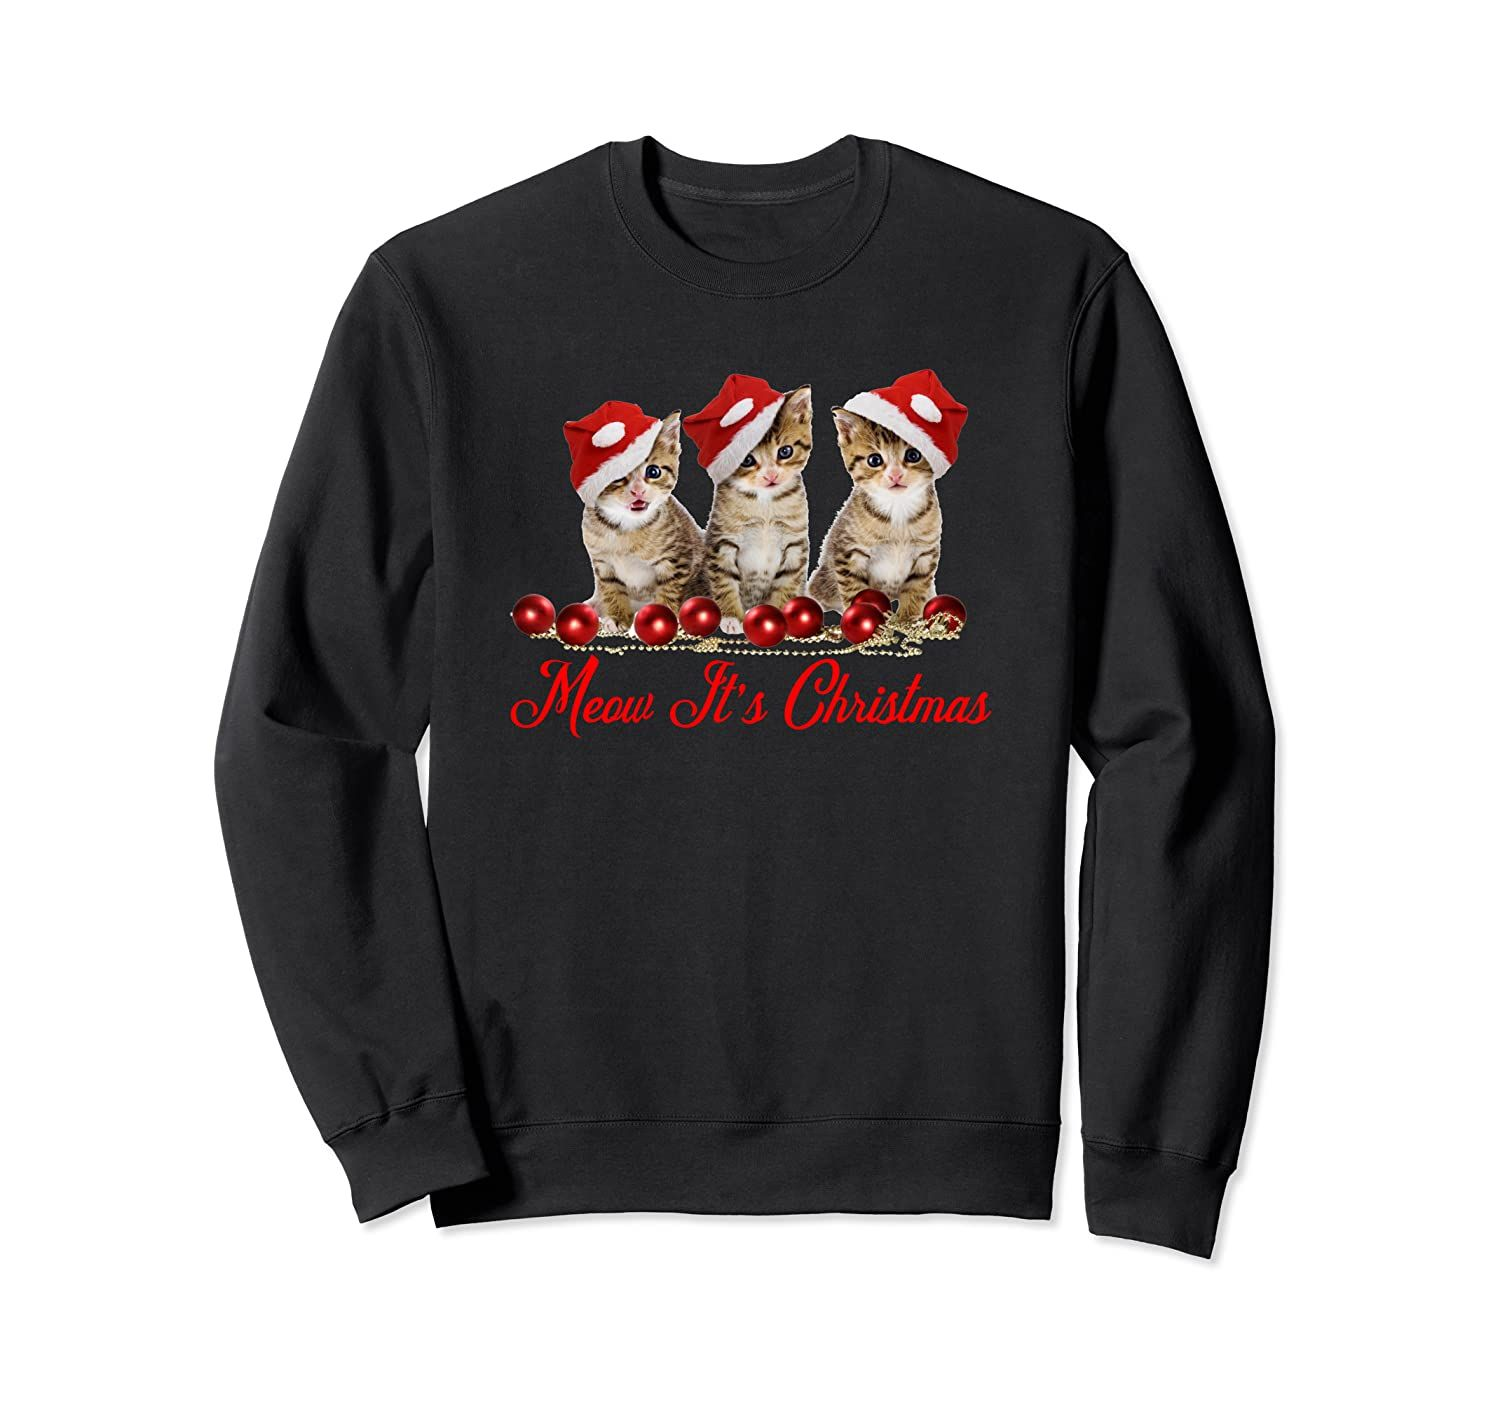 Cute Cat Meow It's Christmas Shirt Gift for Cat Lovers Sweatshirt